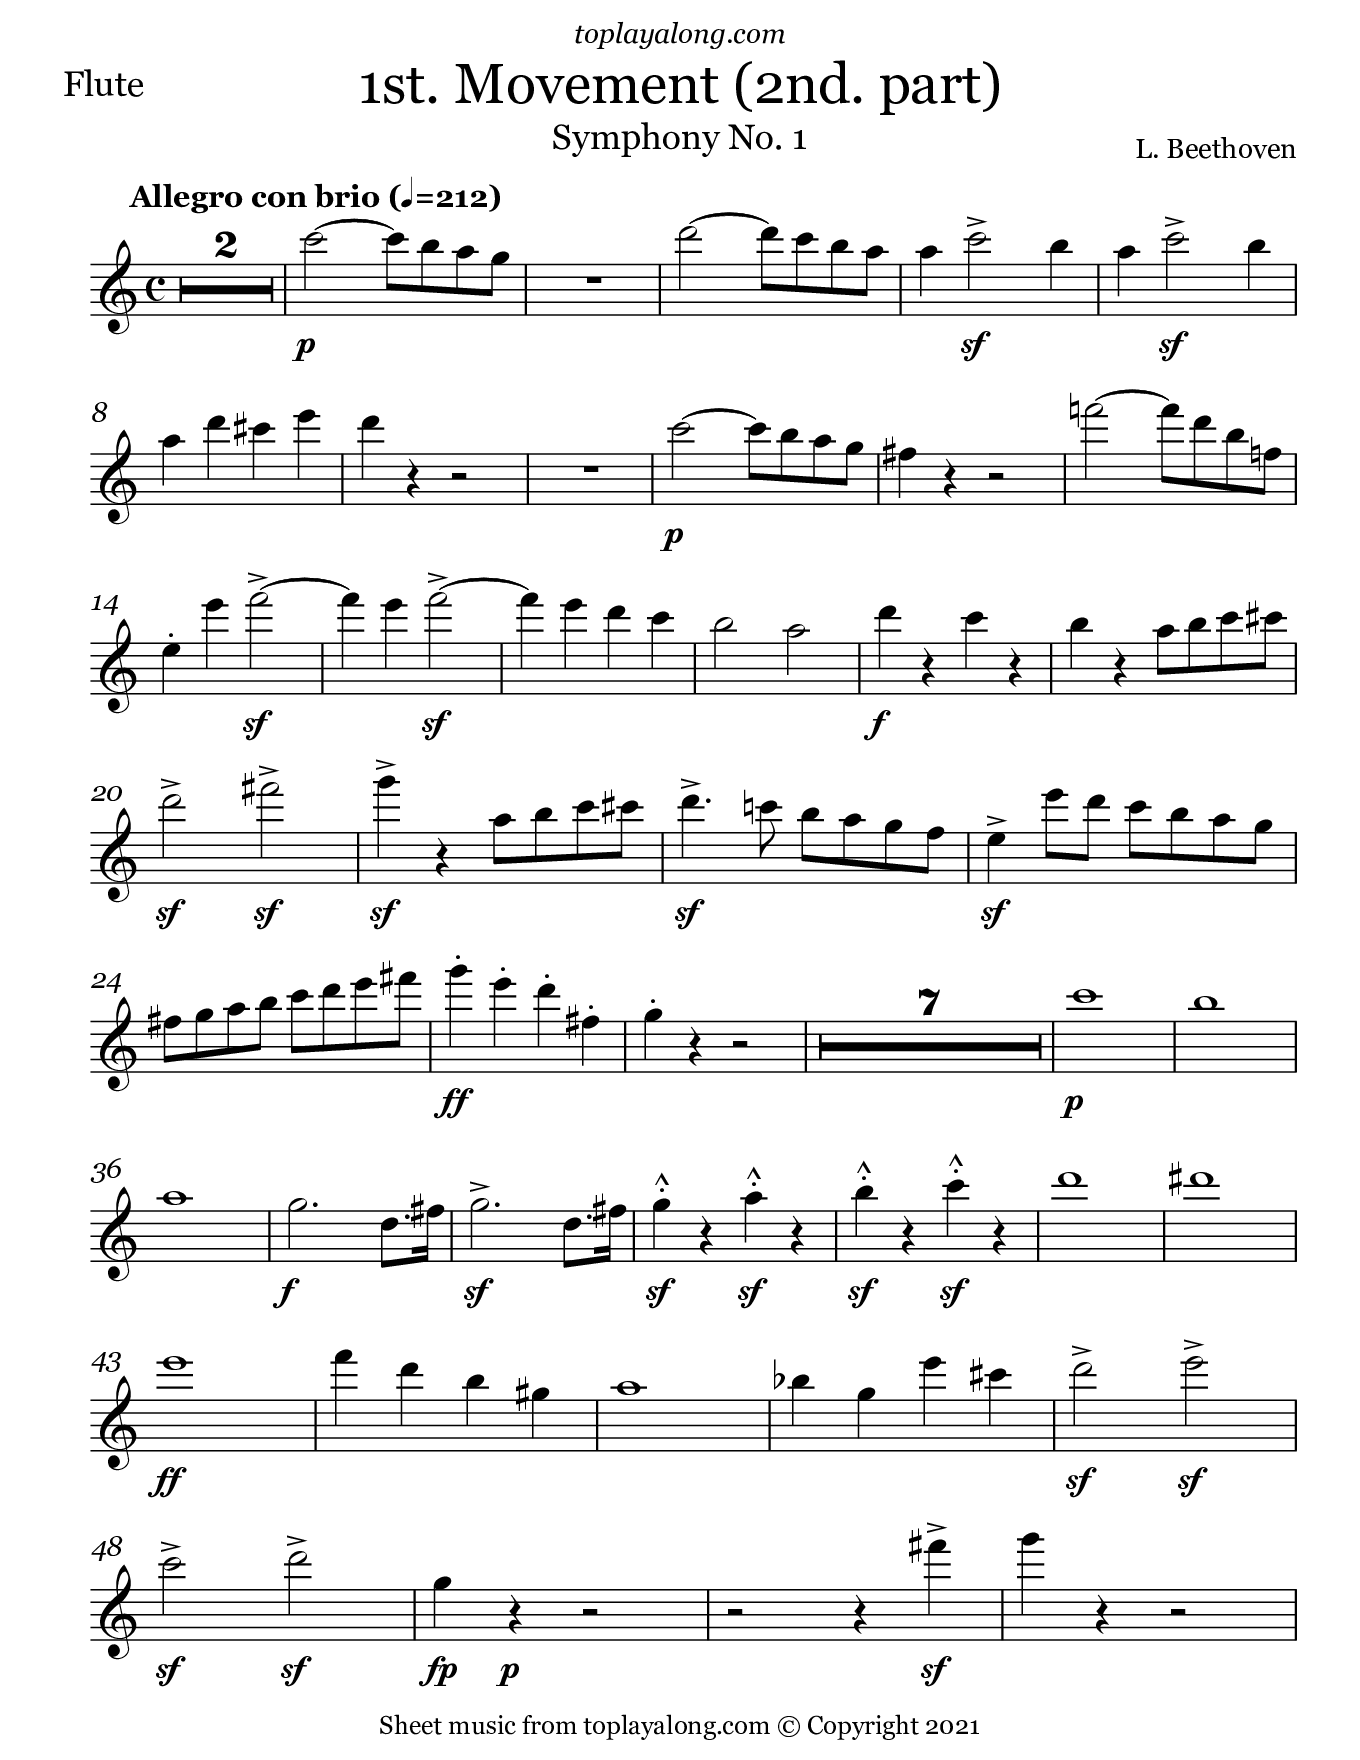 Symphony No.1 (1st. Movement - Part 2) by Beethoven. Sheet music for Flute, page 1.